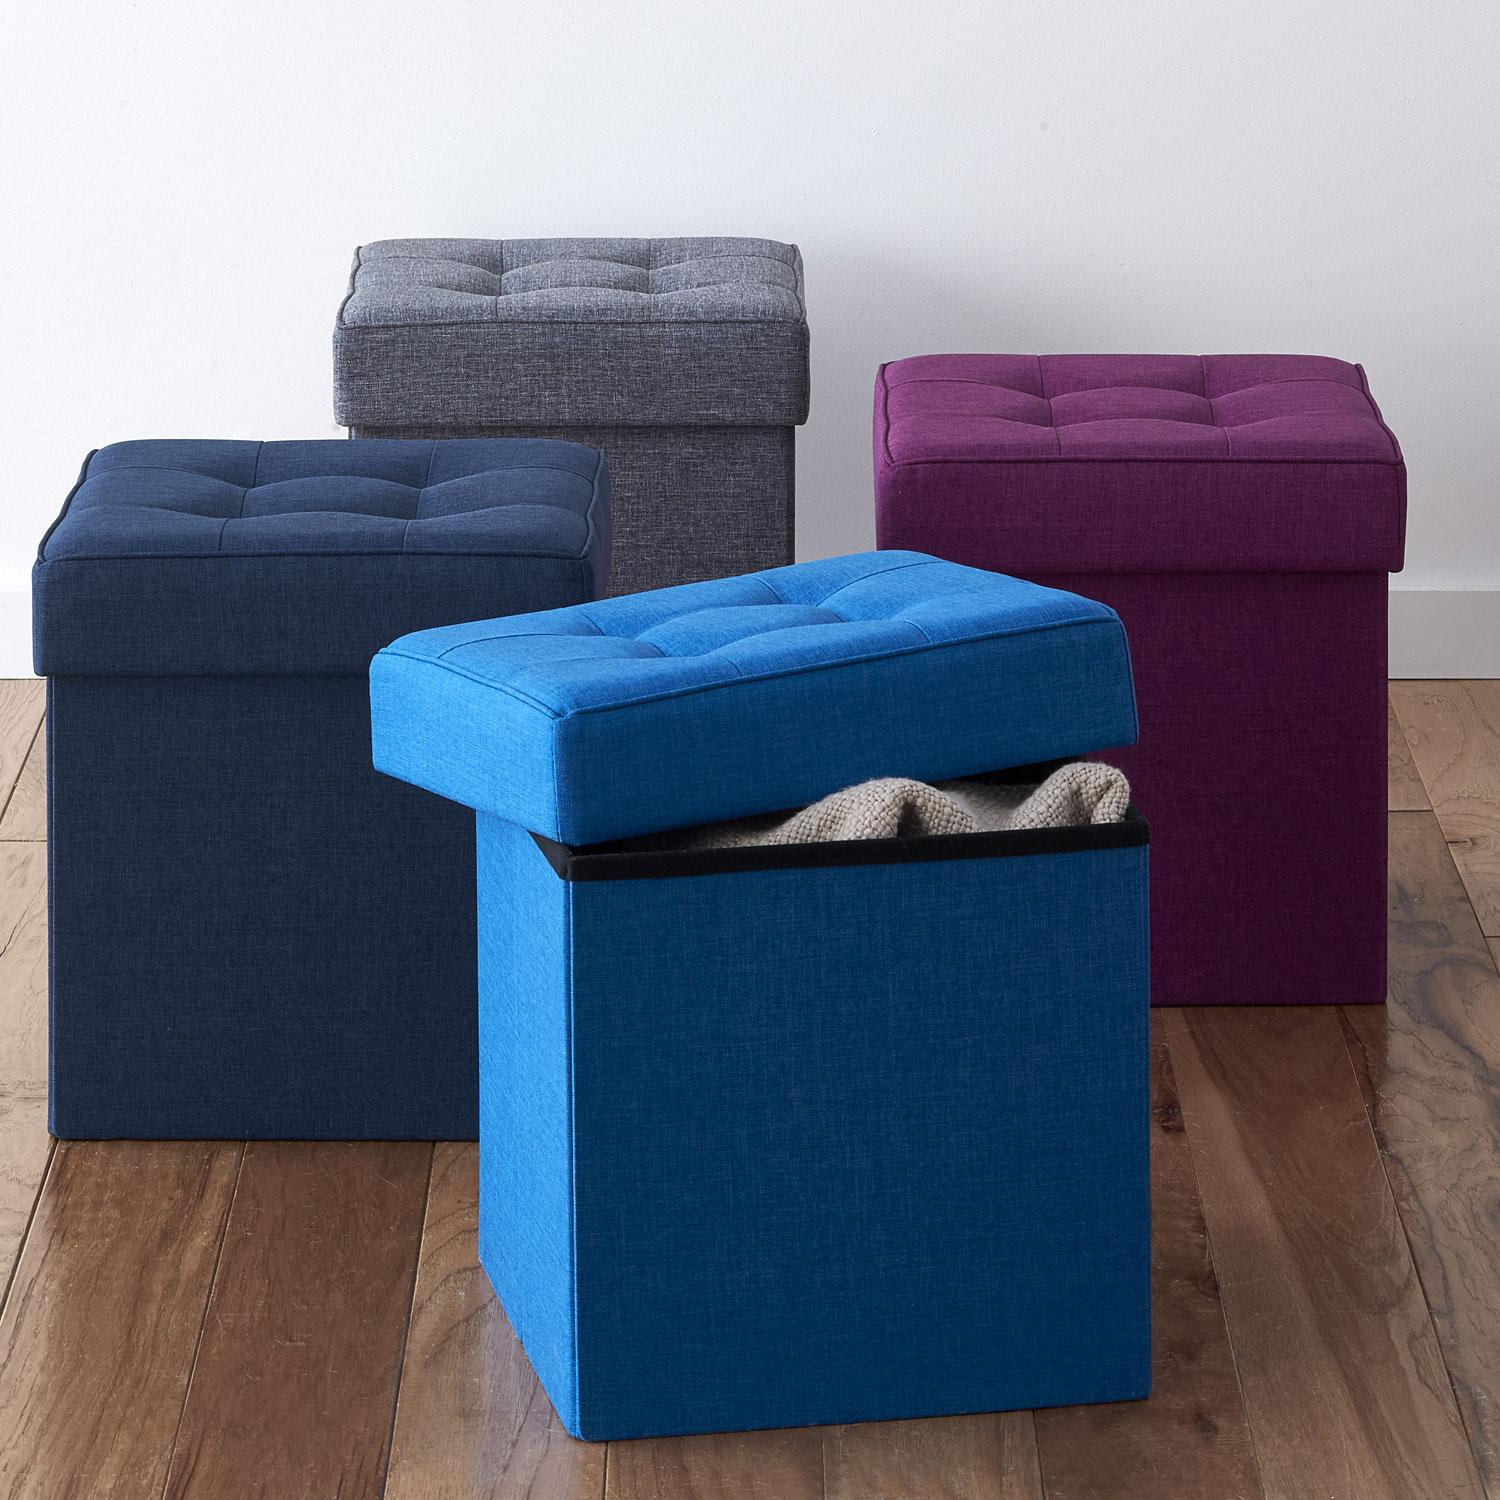 Tufted Storage Ottoman The Company Store